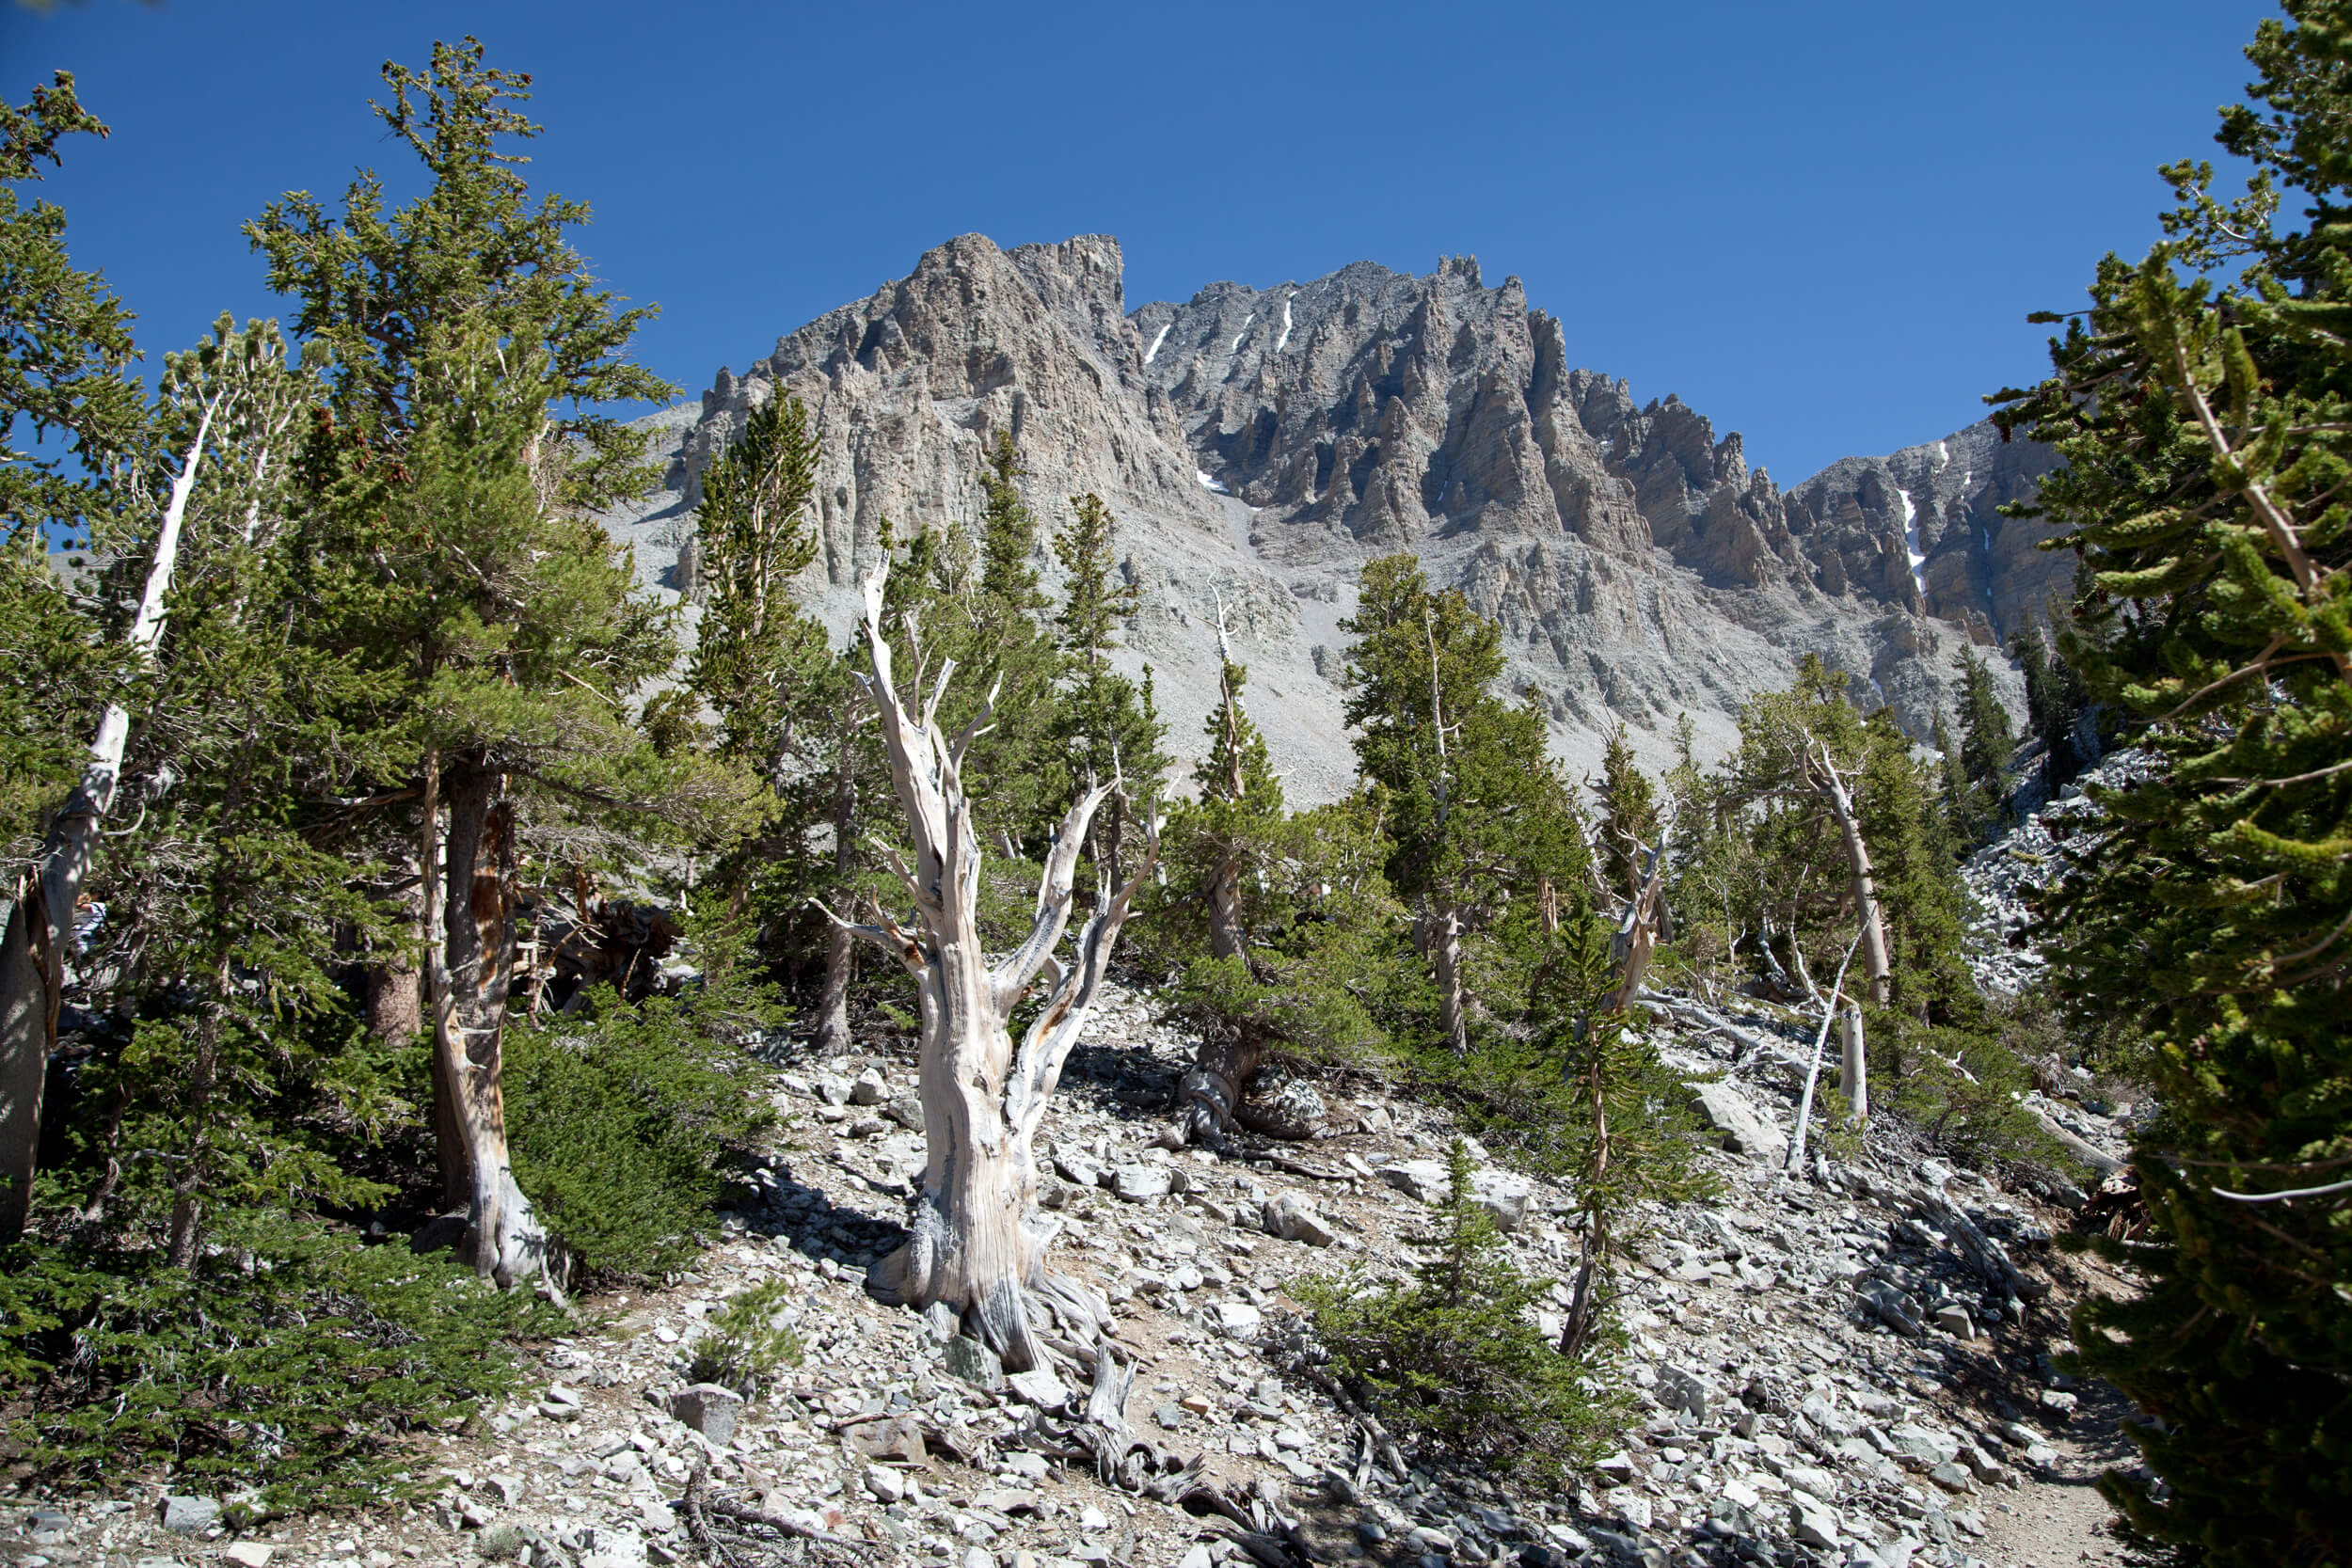 Bristlecone Pine forest and Wheeler Peak in the background